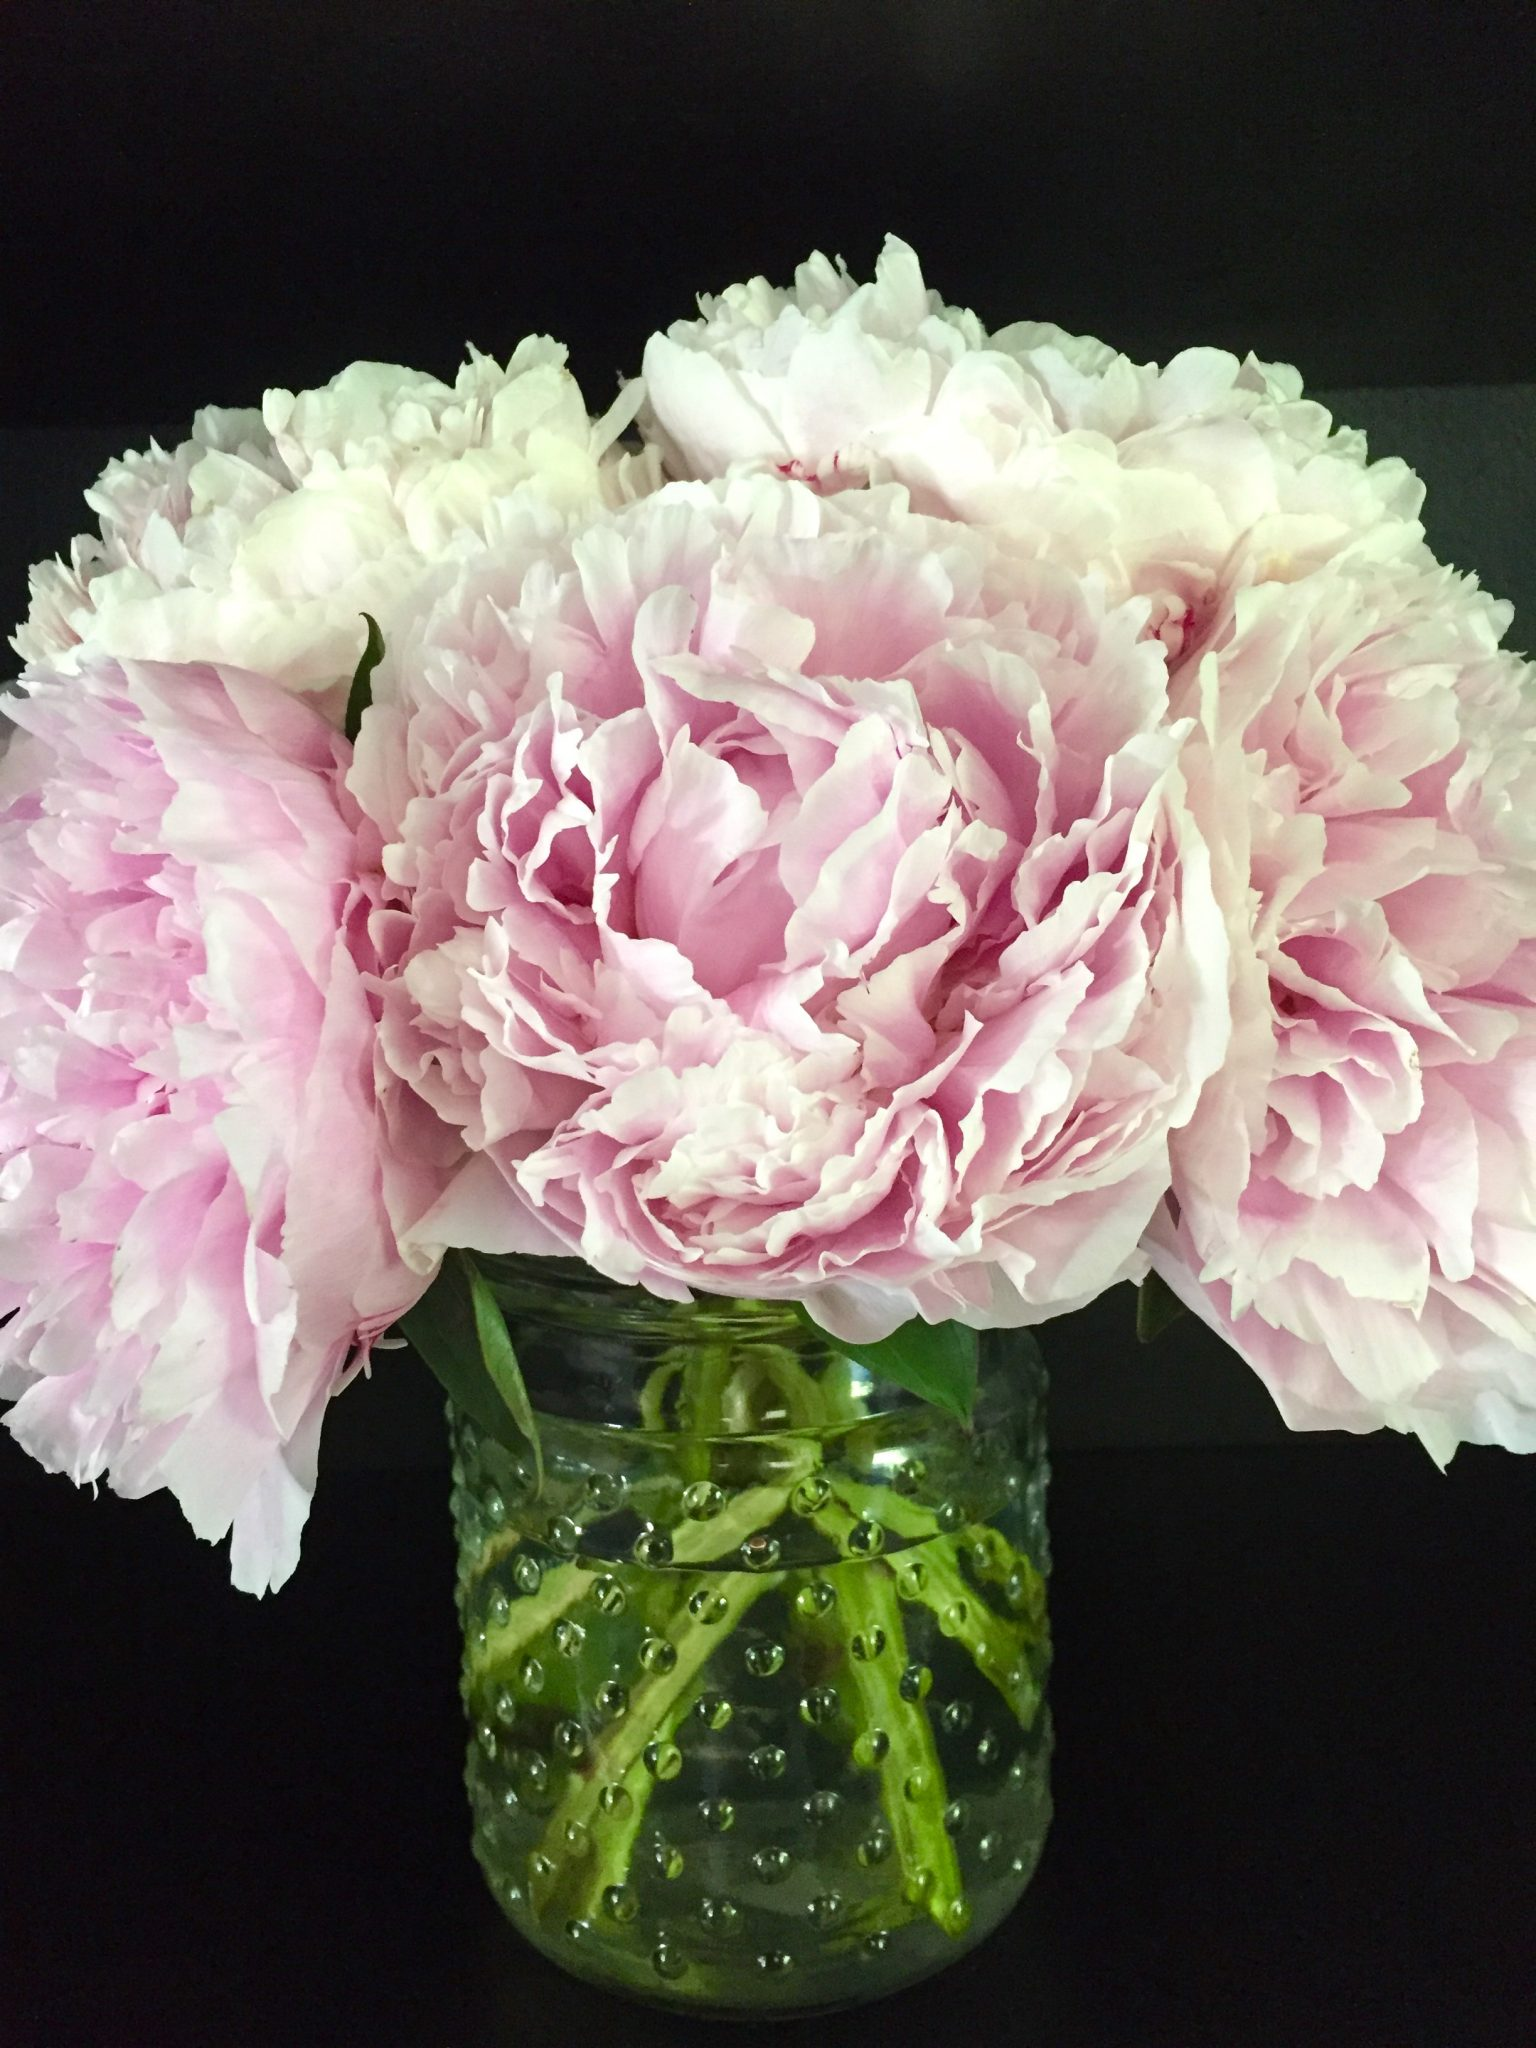 South pole adventurer, the rise of the agribots, homer's literary legacy. How to care for your cut peonies - Effortless Style Blog